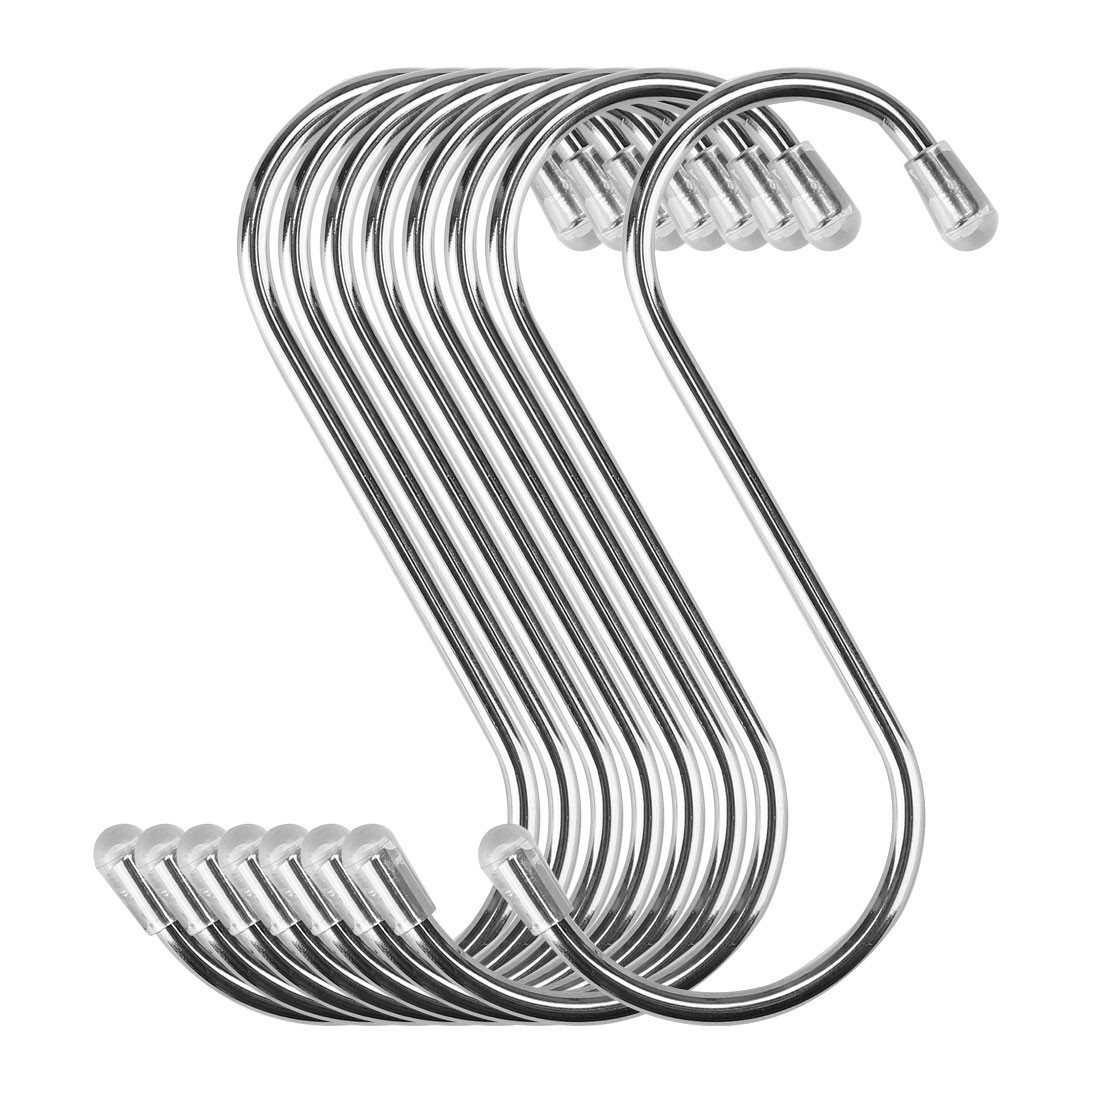 8pcs 2.56 Inch S Shaped Hook Stainless Steel for Kitchenware Hat Coat Holder